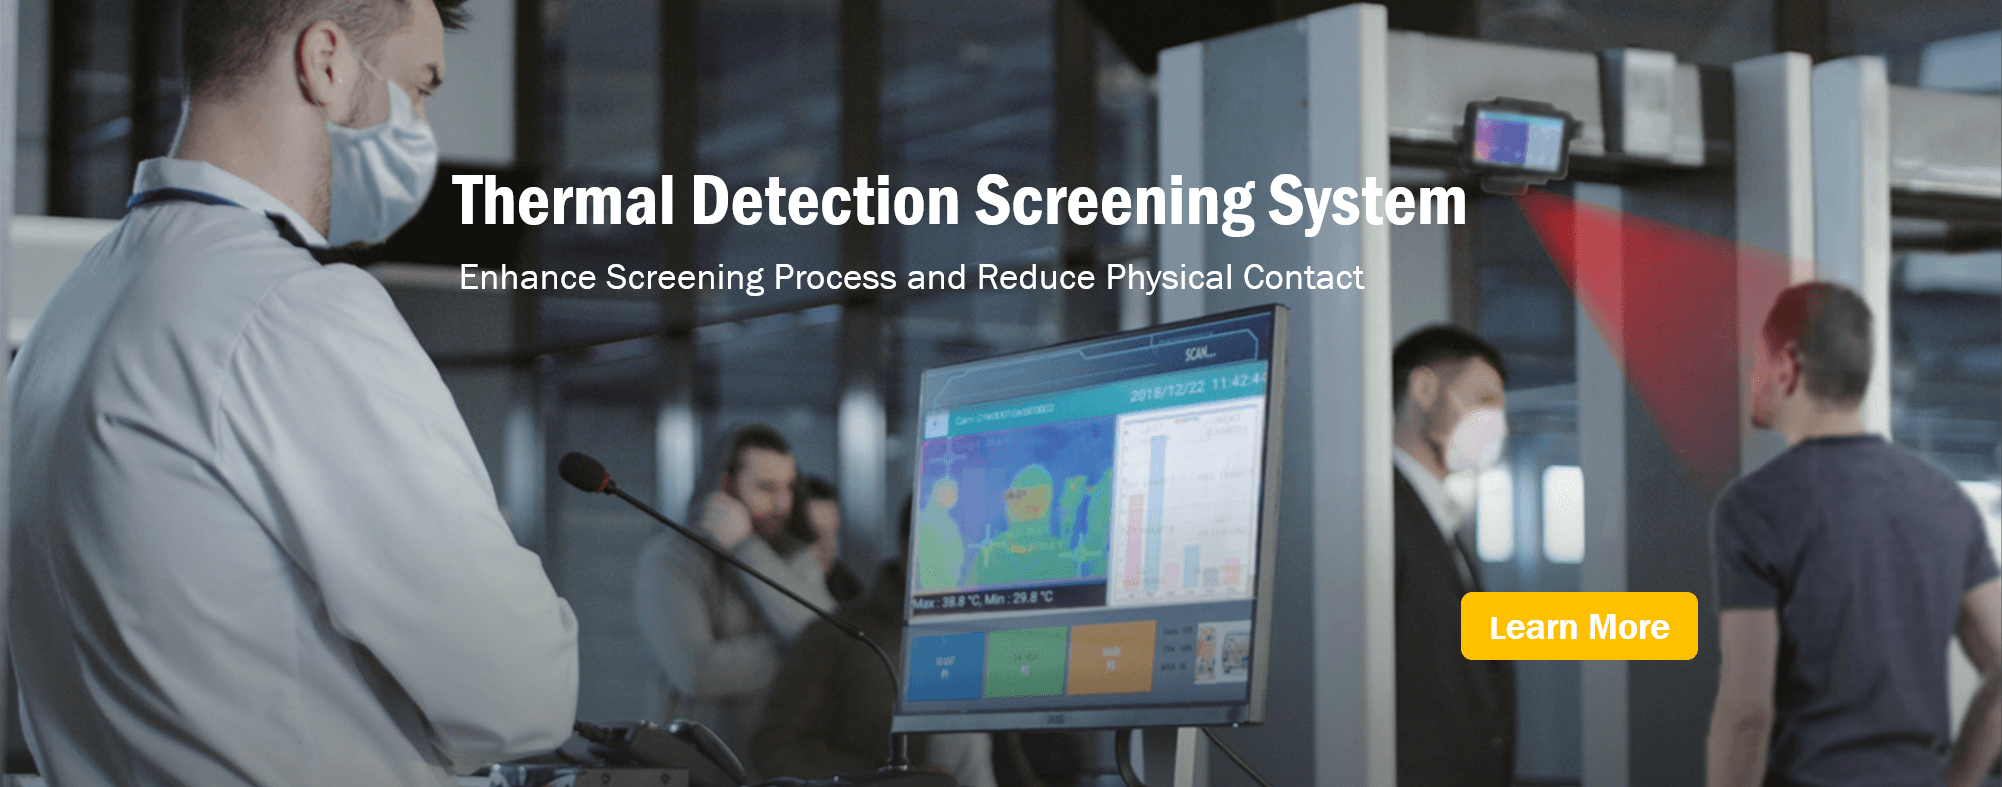 COVID-19 Thermal Detection System | Midas Touch